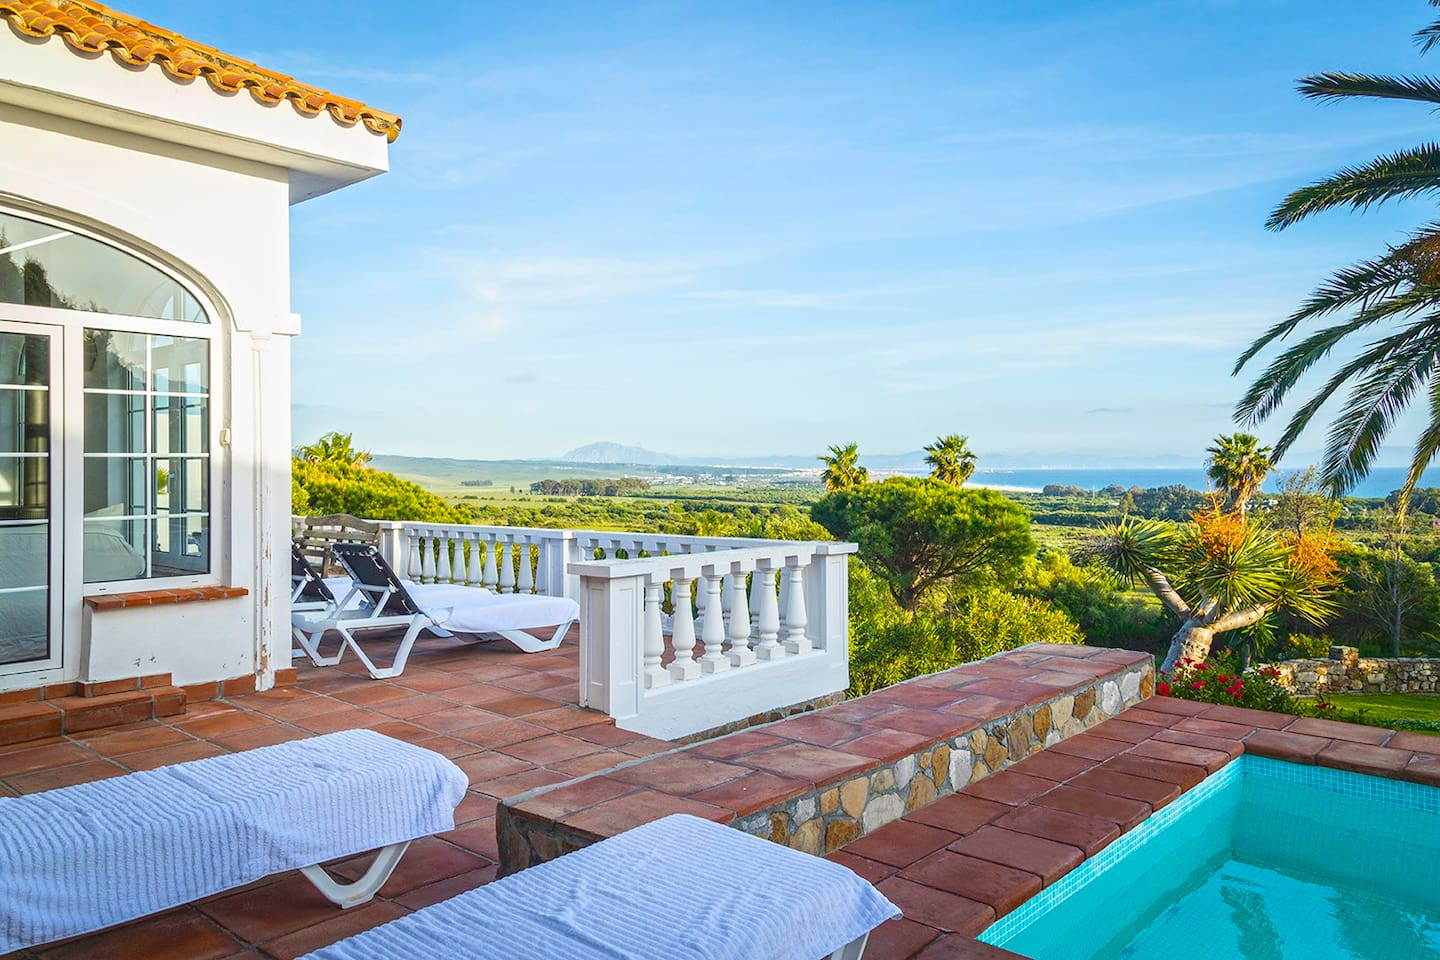 Terrace and pool with stunning views of Strait of Gibraltar and Morrocco